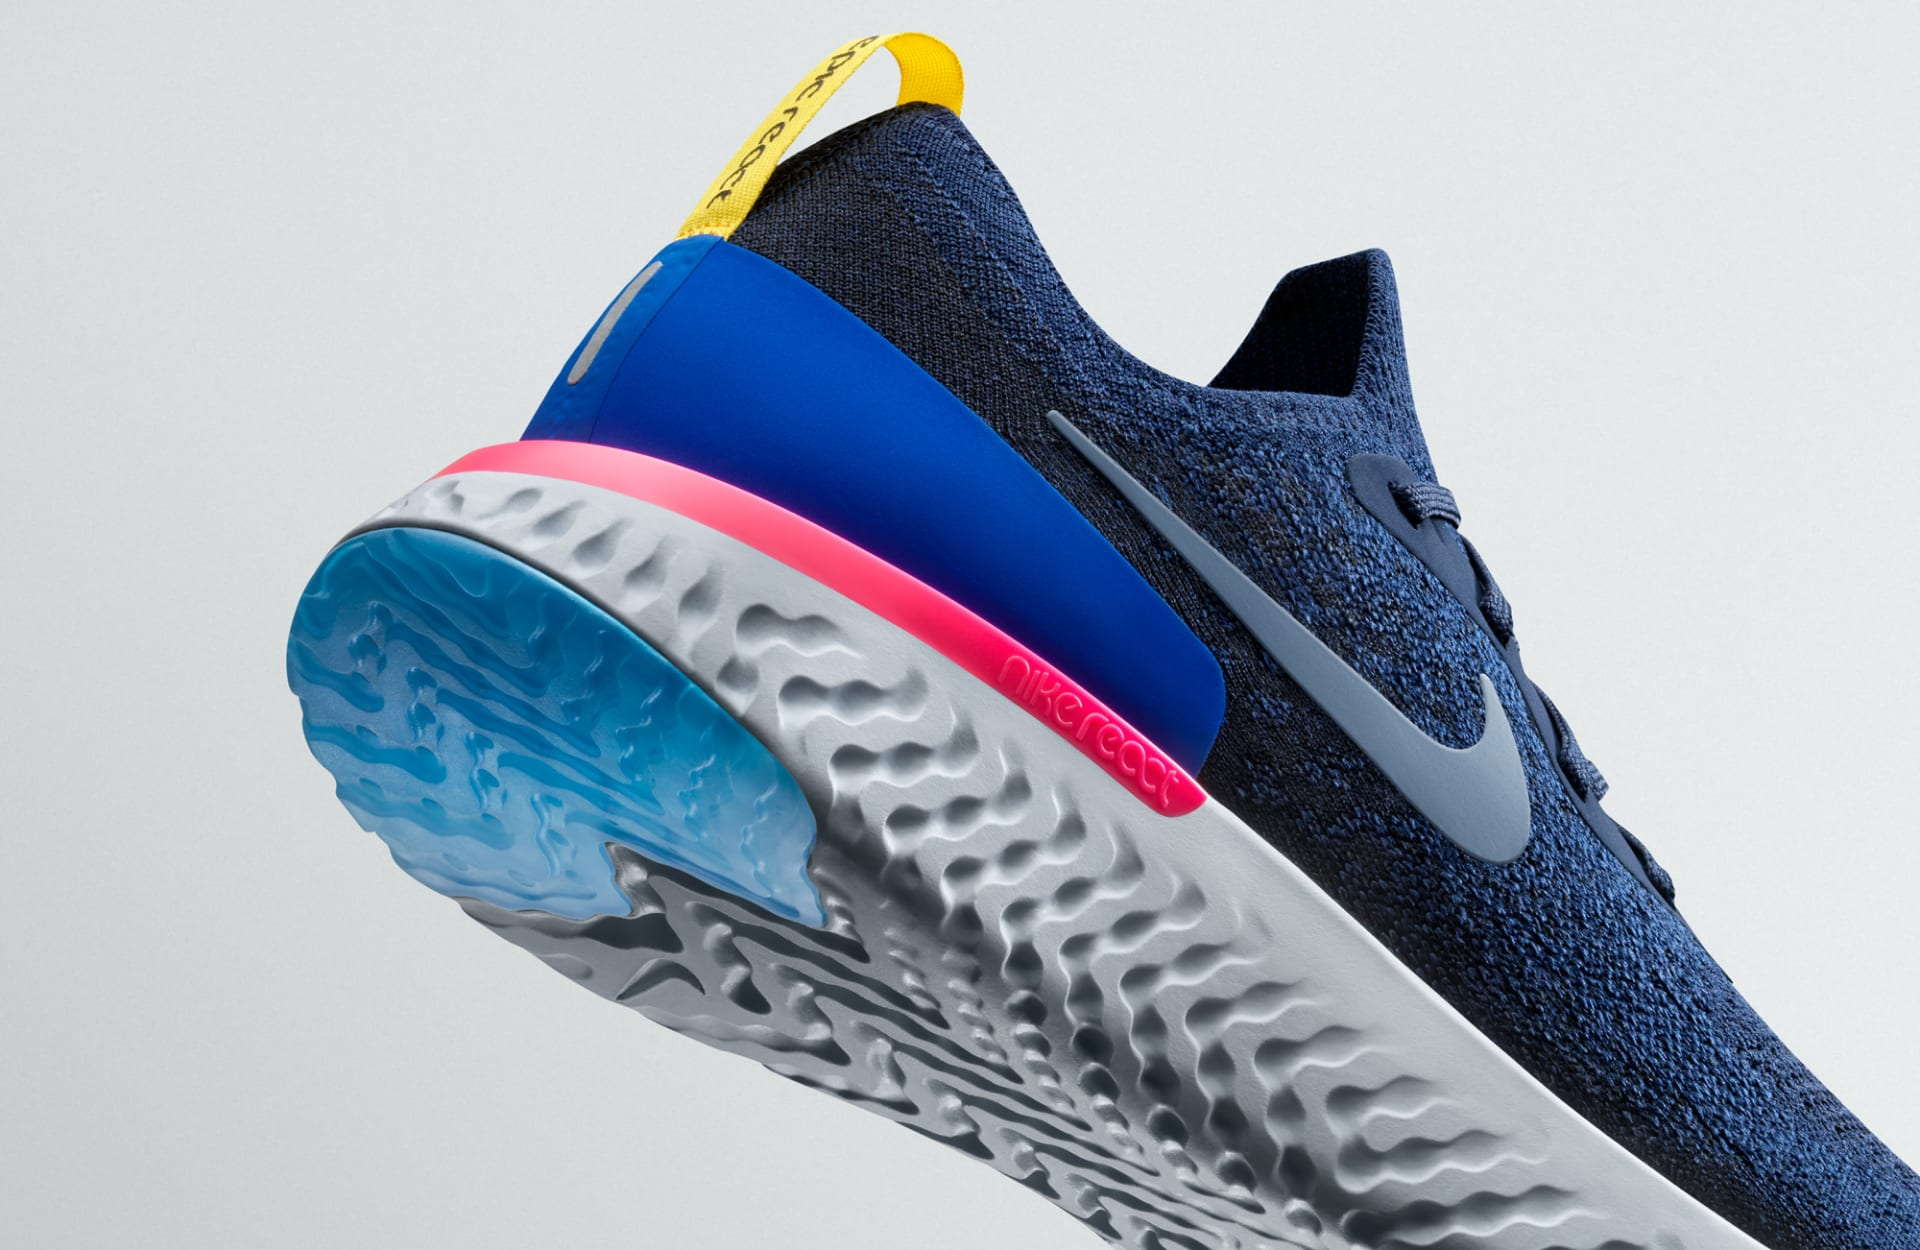 designer fashion b0fc2 a4d48 nike-epic-flyknit-react